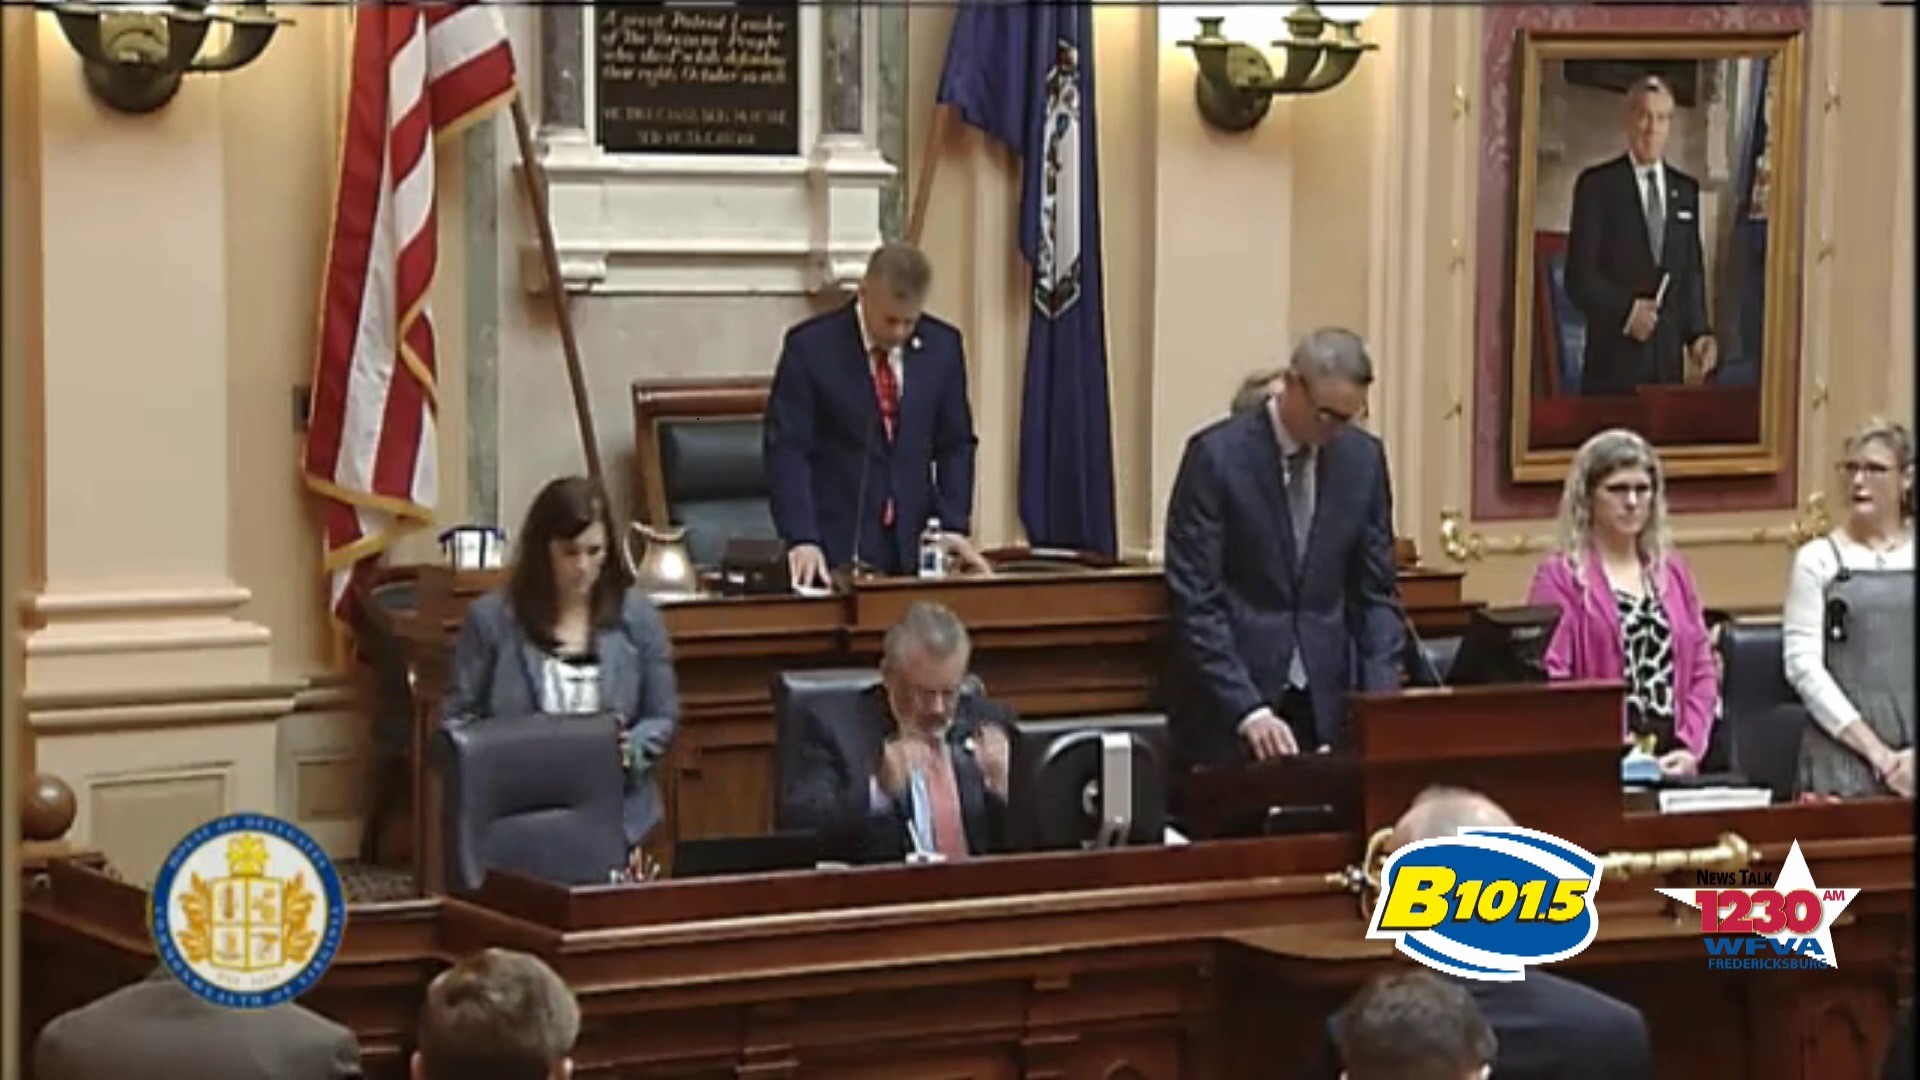 Area Director for Fellowship of Christian Athletes opens House of Delegates in prayer